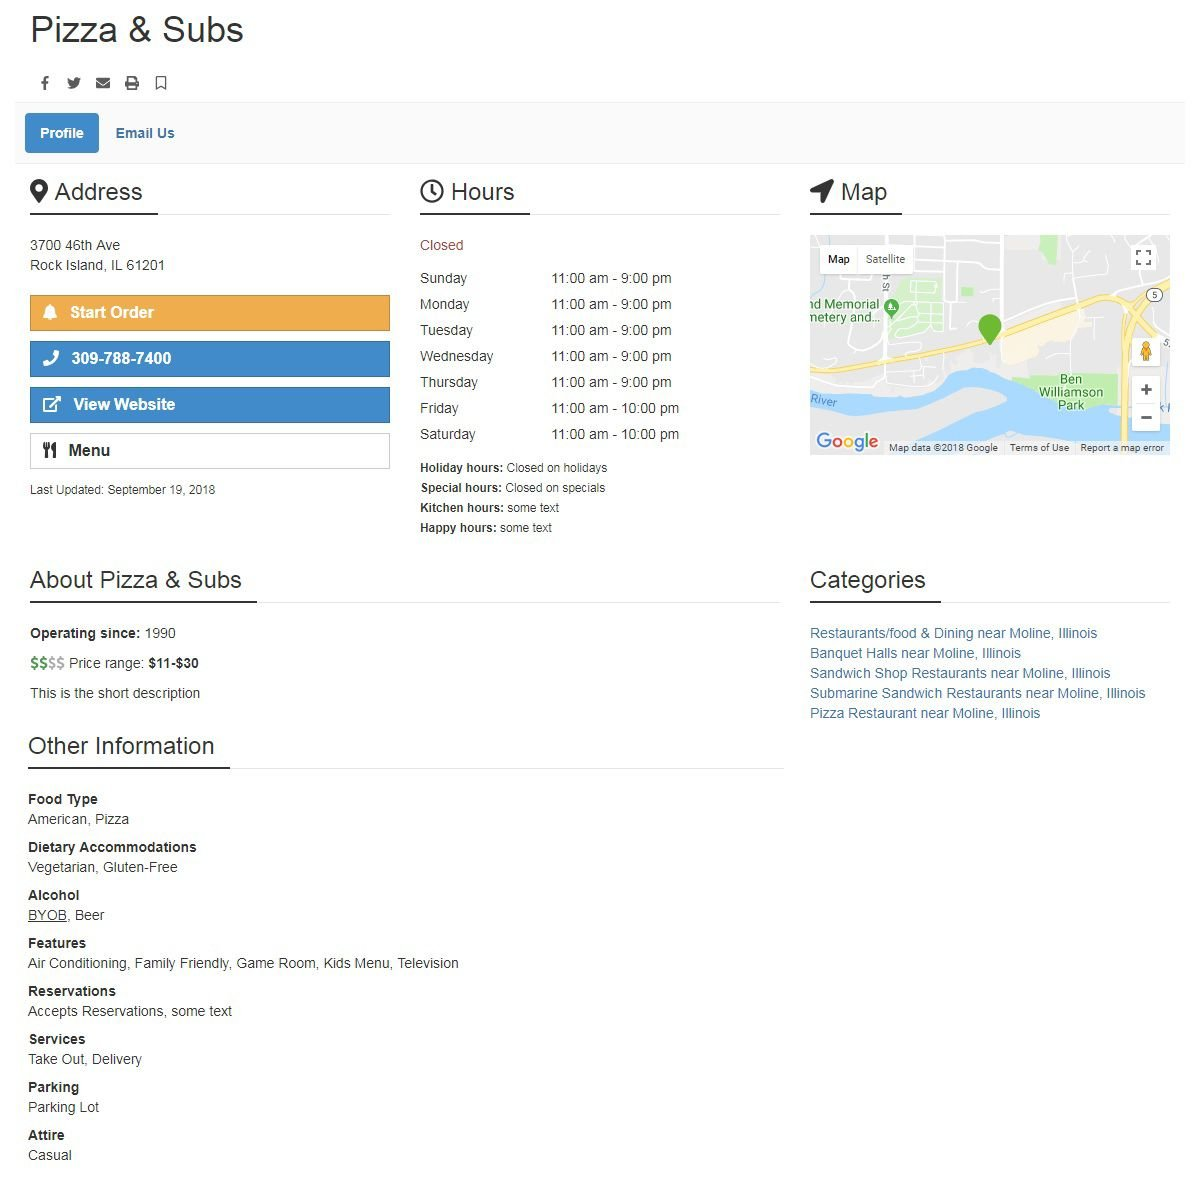 Restaurant Profile Page